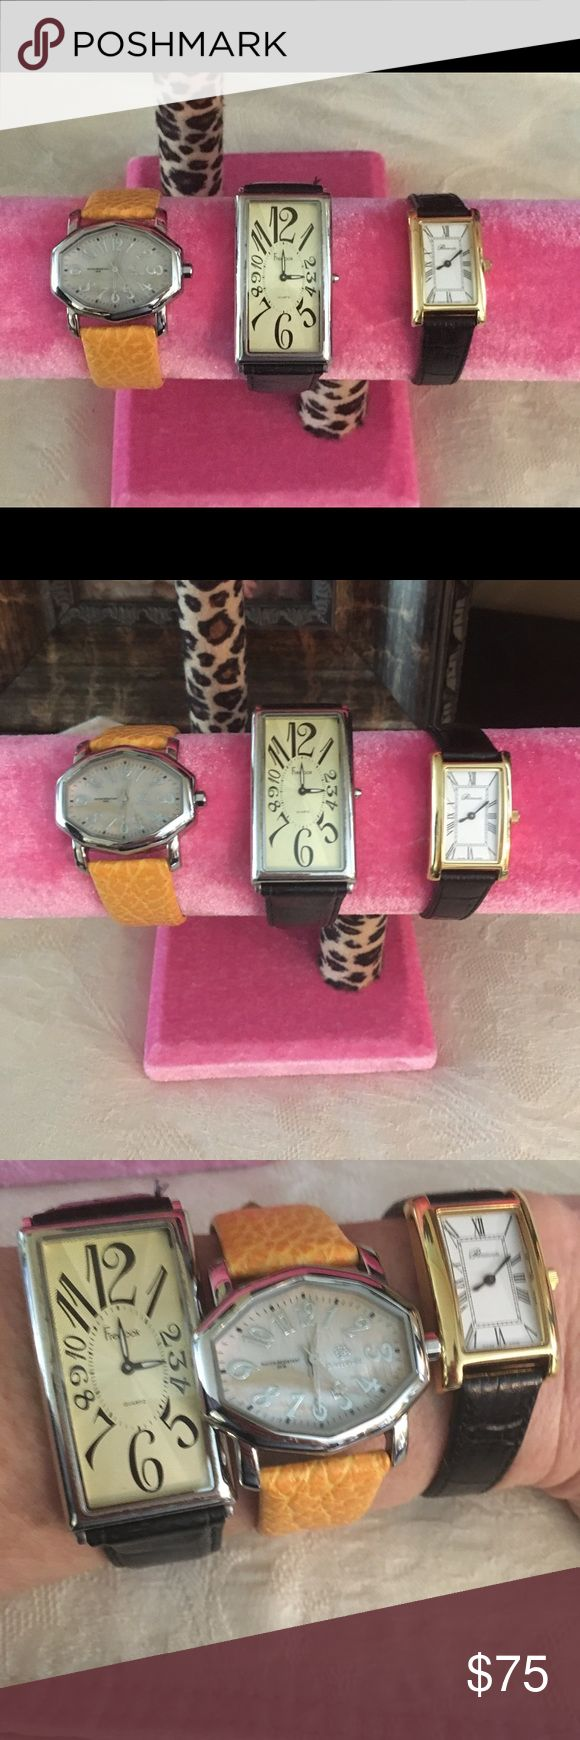 Lot of Ladies Designer Watches Pastorelli & More This is a lot of 3 Designer Ladies Wrist Watches.  The Pastorelli has a Mother Of Pearl Face and a genuine leather band.  The Freelook has a black leather band with a Gold Face.  The Portsmouth has a black leather band and has Gold Tone case.  It is a Swiss made watch and it is signed on the back with a Ladies first name and I assume a Company, dated 2003.  It doesn't look like it's ever been worn.  All of these will need a new battery…